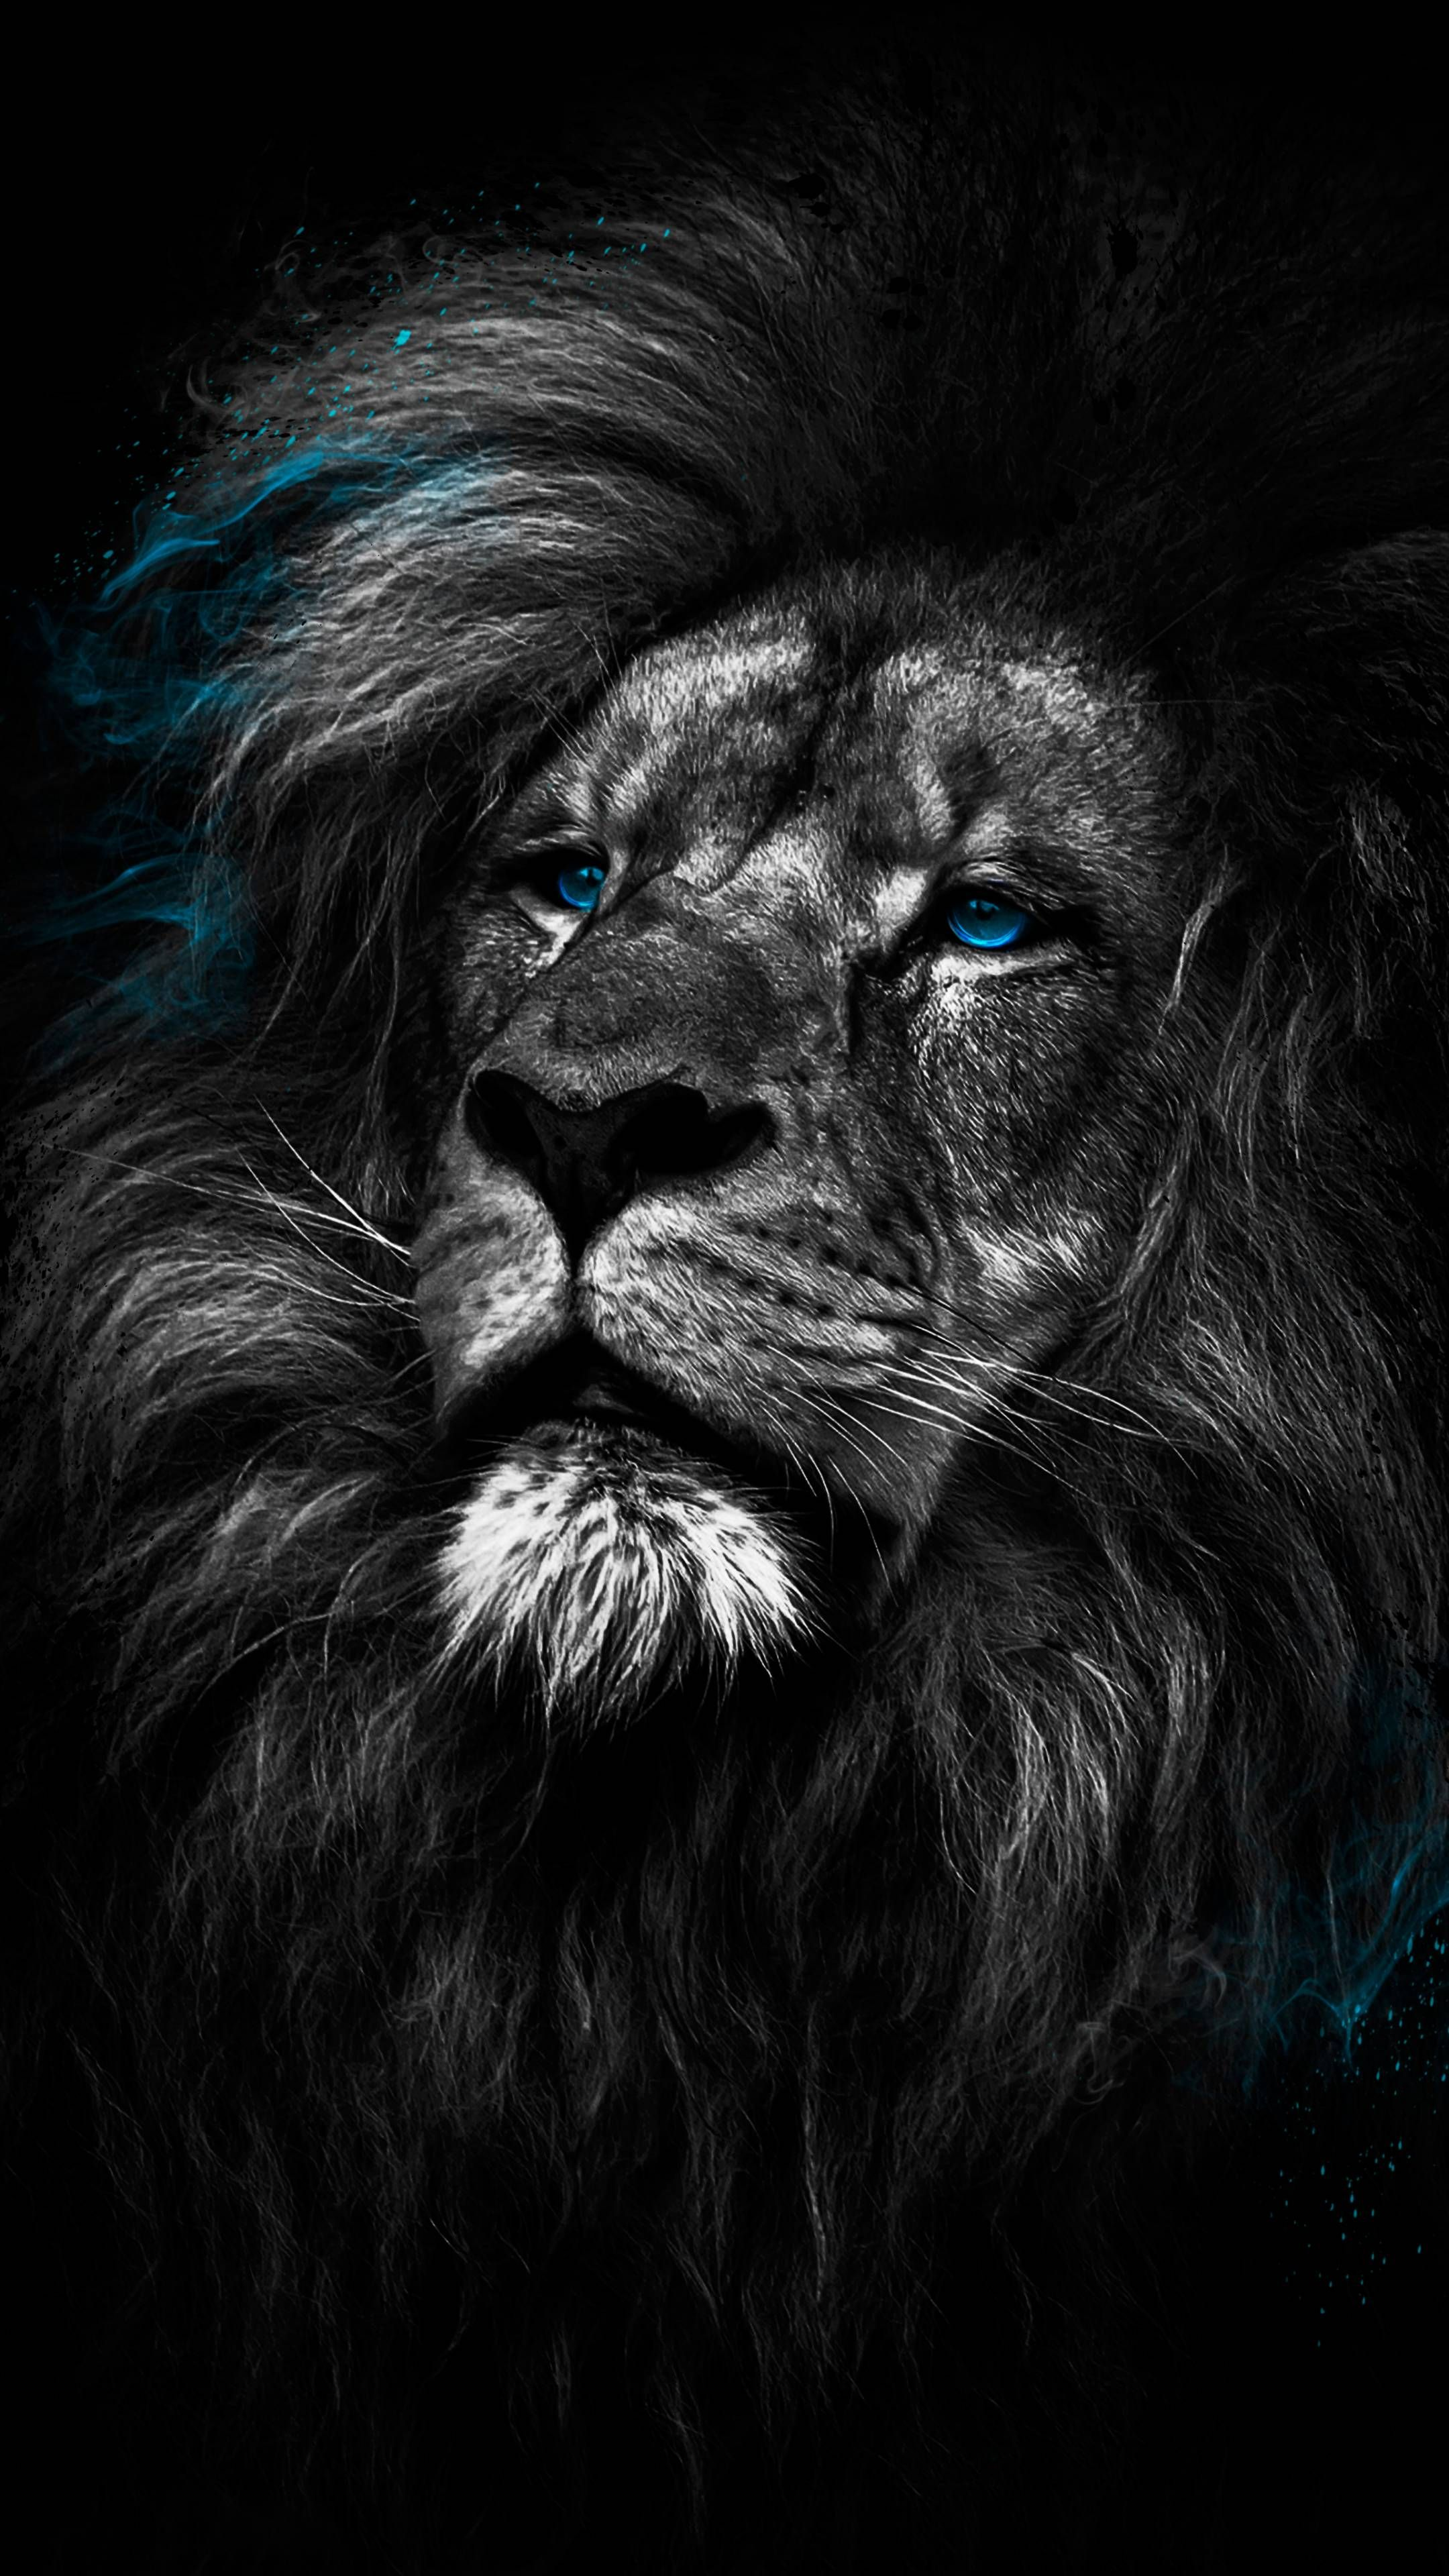 Lion Dark 4K Amoled Android Black Wallpapers ⋆ Traxzee